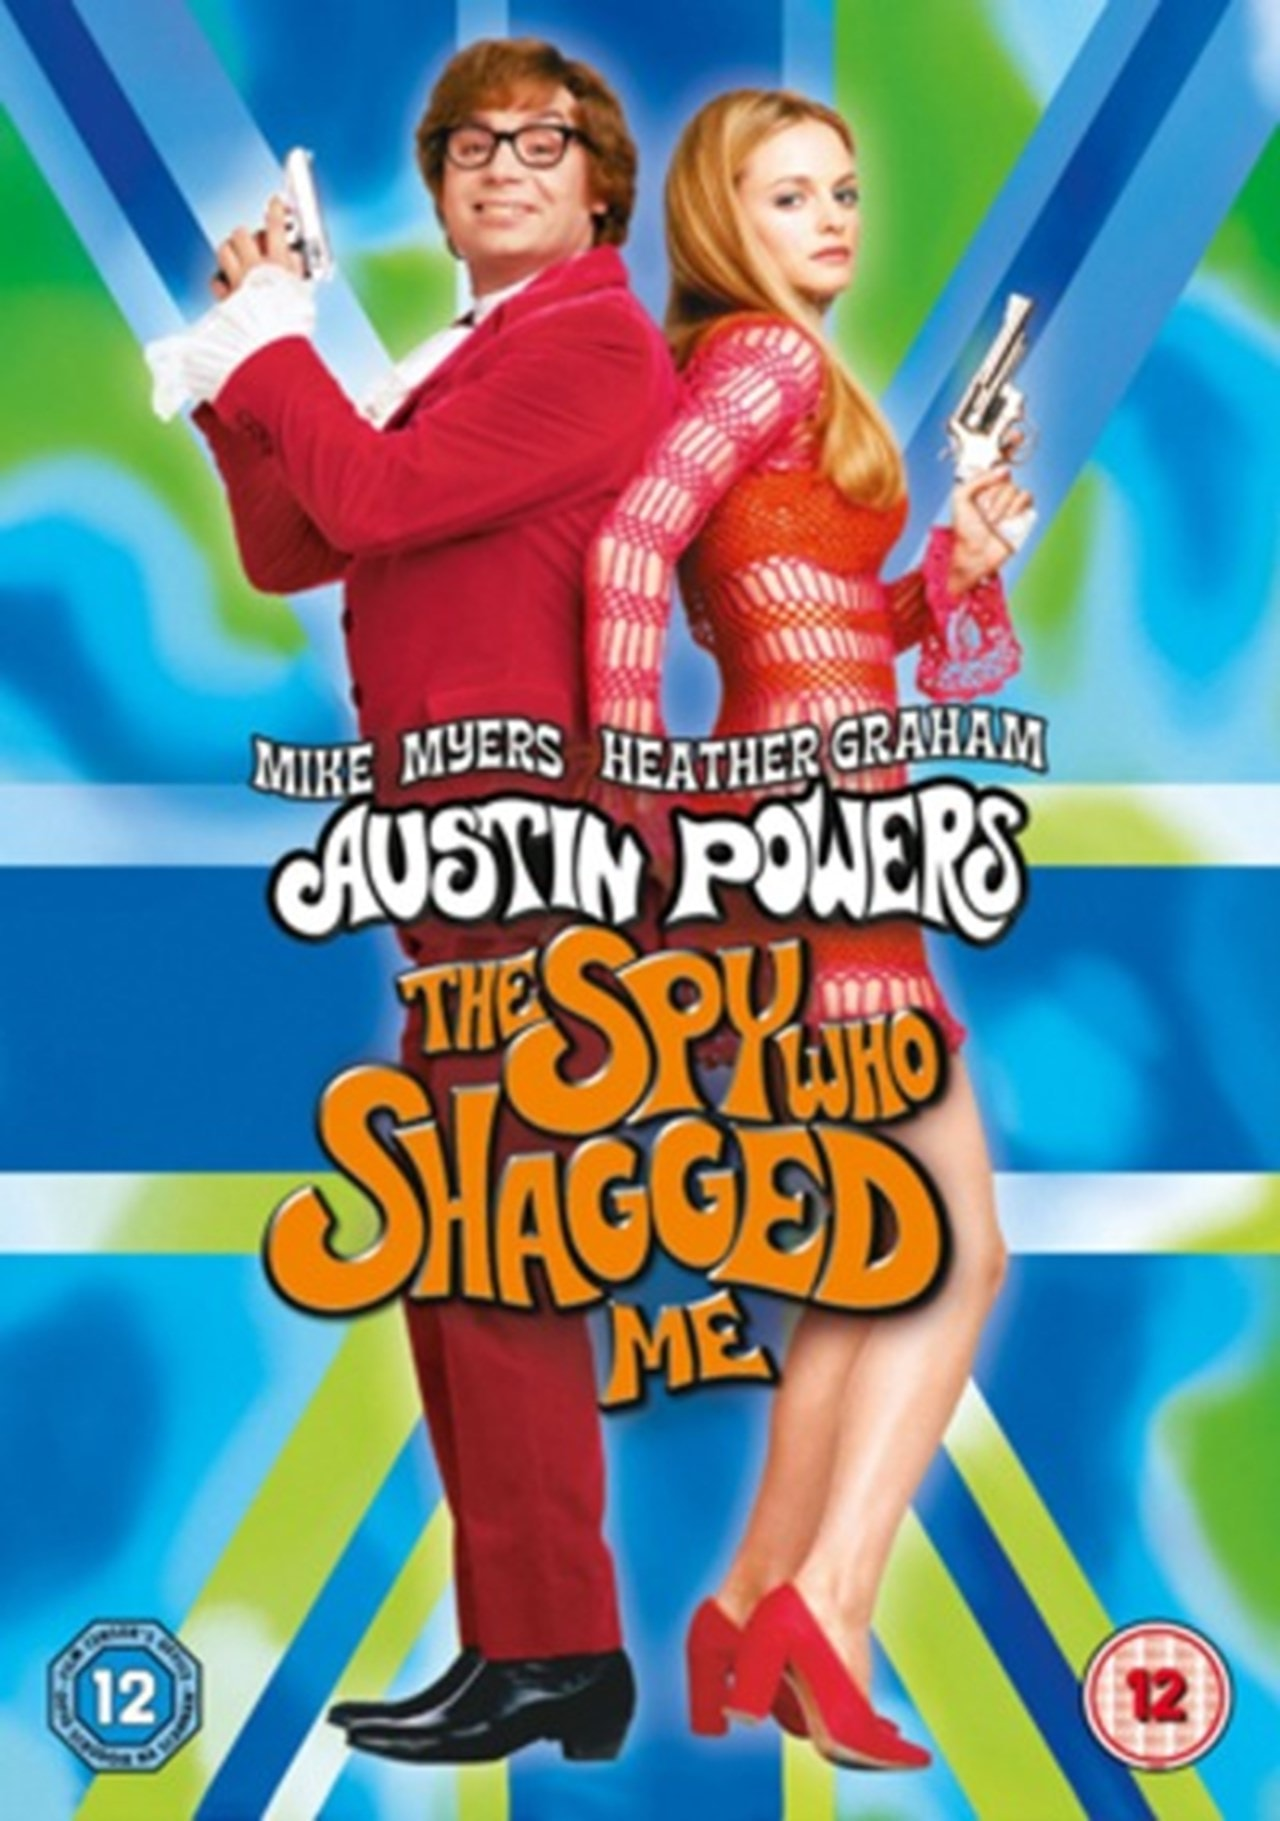 Austin Powers: The Spy Who Shagged Me - 1